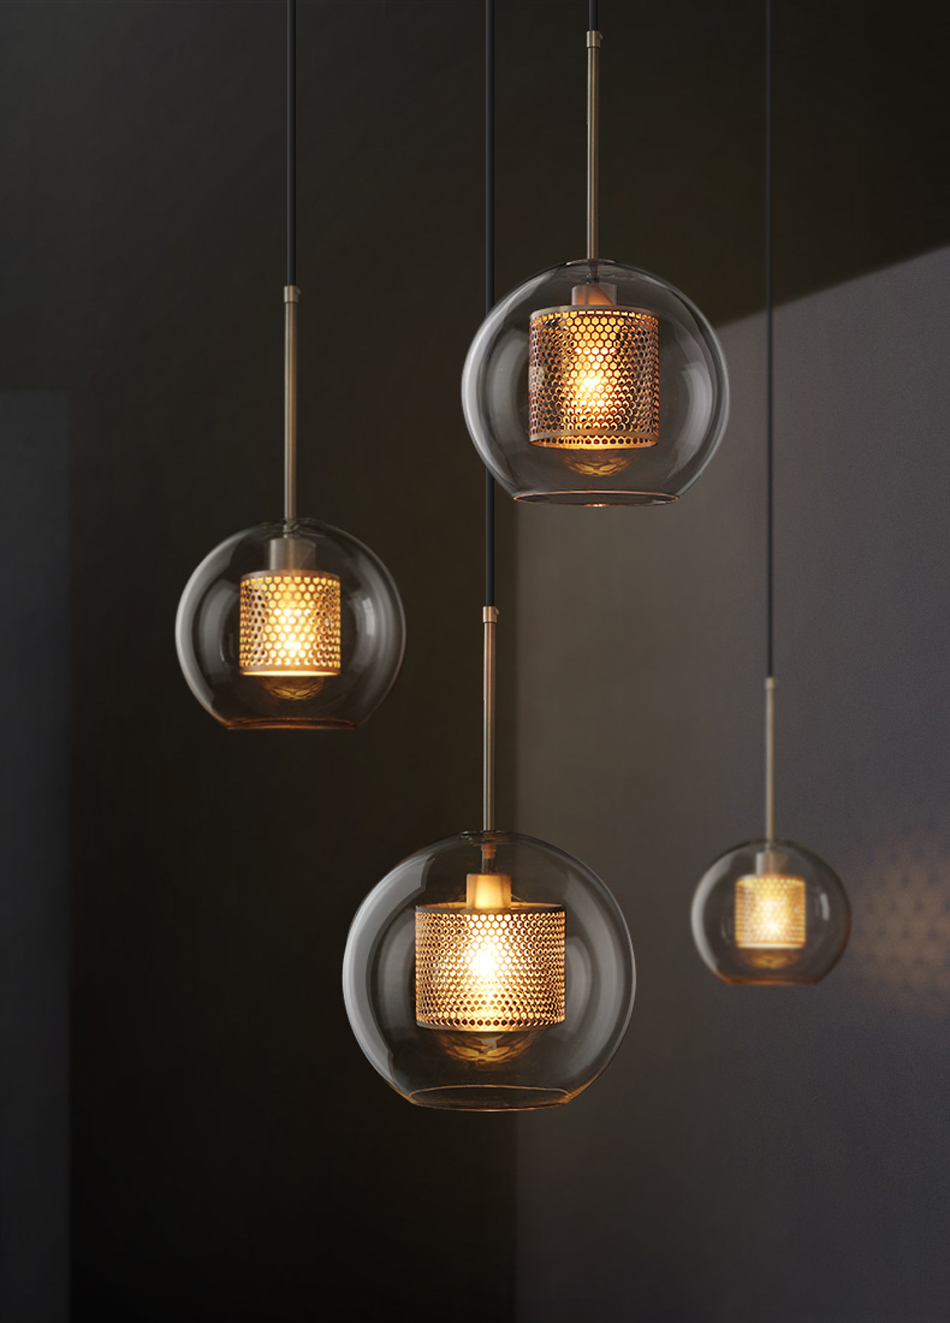 Luminaire Suspension Vintage Us 88 Luals Loft Pendant Lamp Vintage Pendant Lights Simple Glass Suspension Luminaire Art Deco Lighting Edison Nordic Hanging Light In Pendant